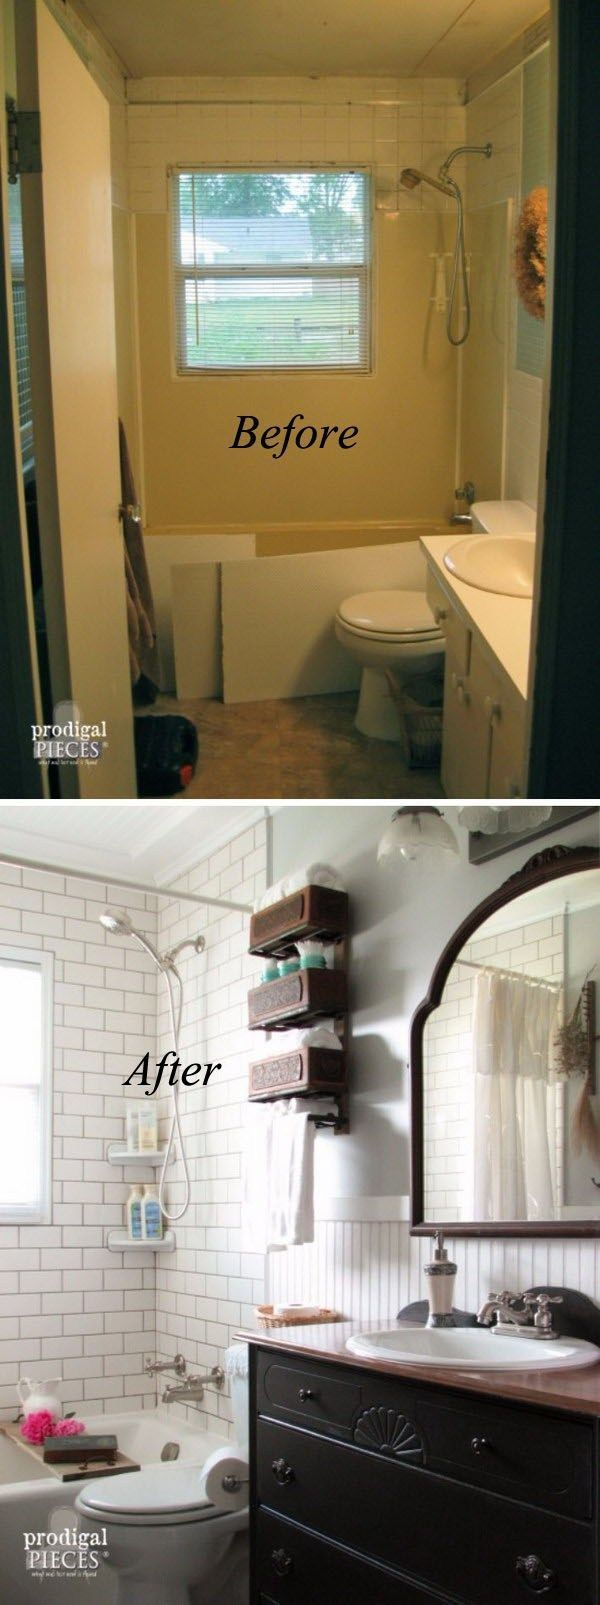 37 Small Bathroom Makeovers. Before And After Pics | Small Bathroom Makeovers Pictures | Reno...#bathroom #makeovers #pics #pictures #reno #small